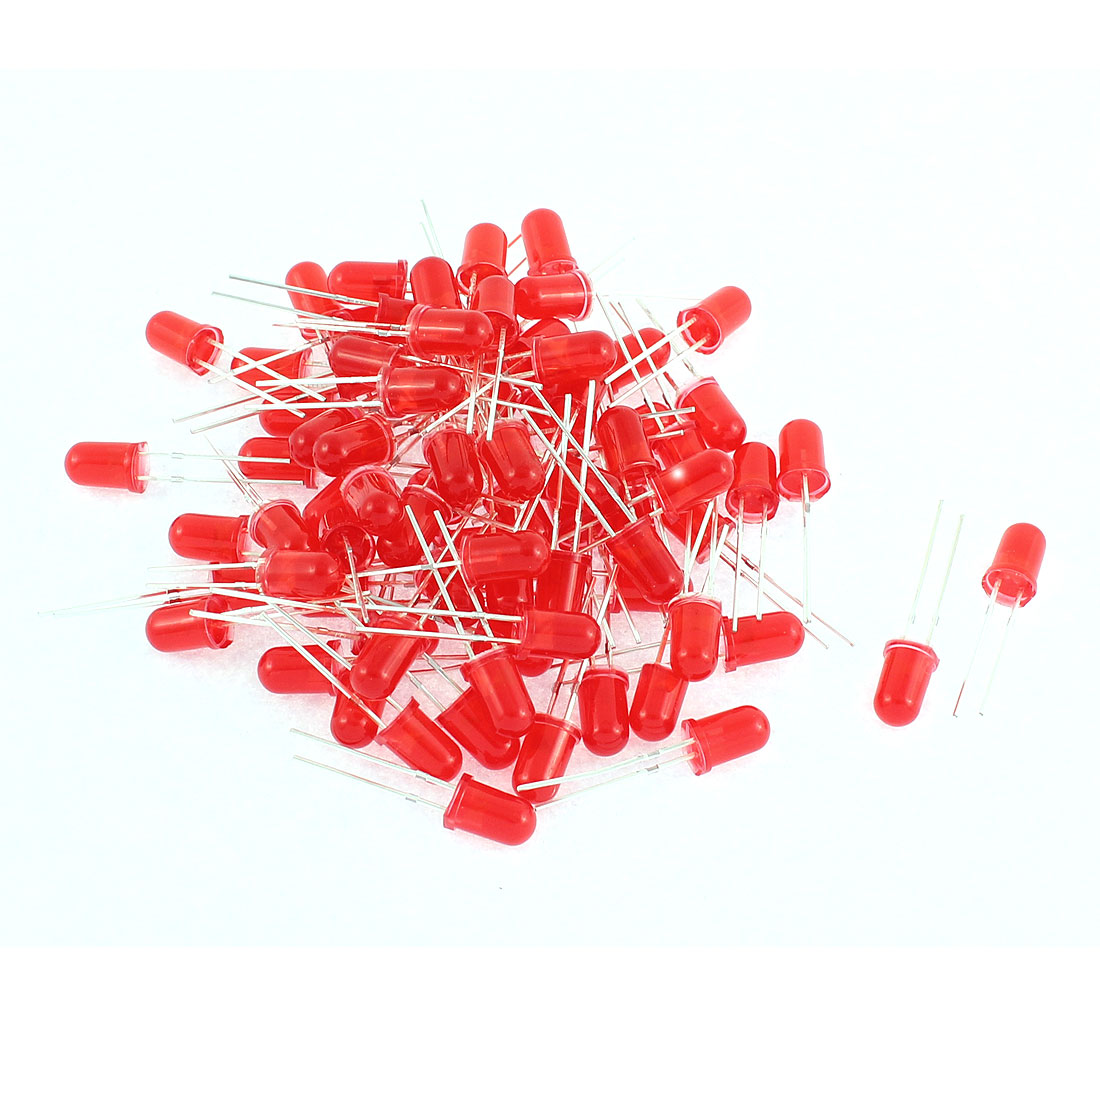 75pcs 5mm Round Top Red Light LED Emitting Diodes Component Beads